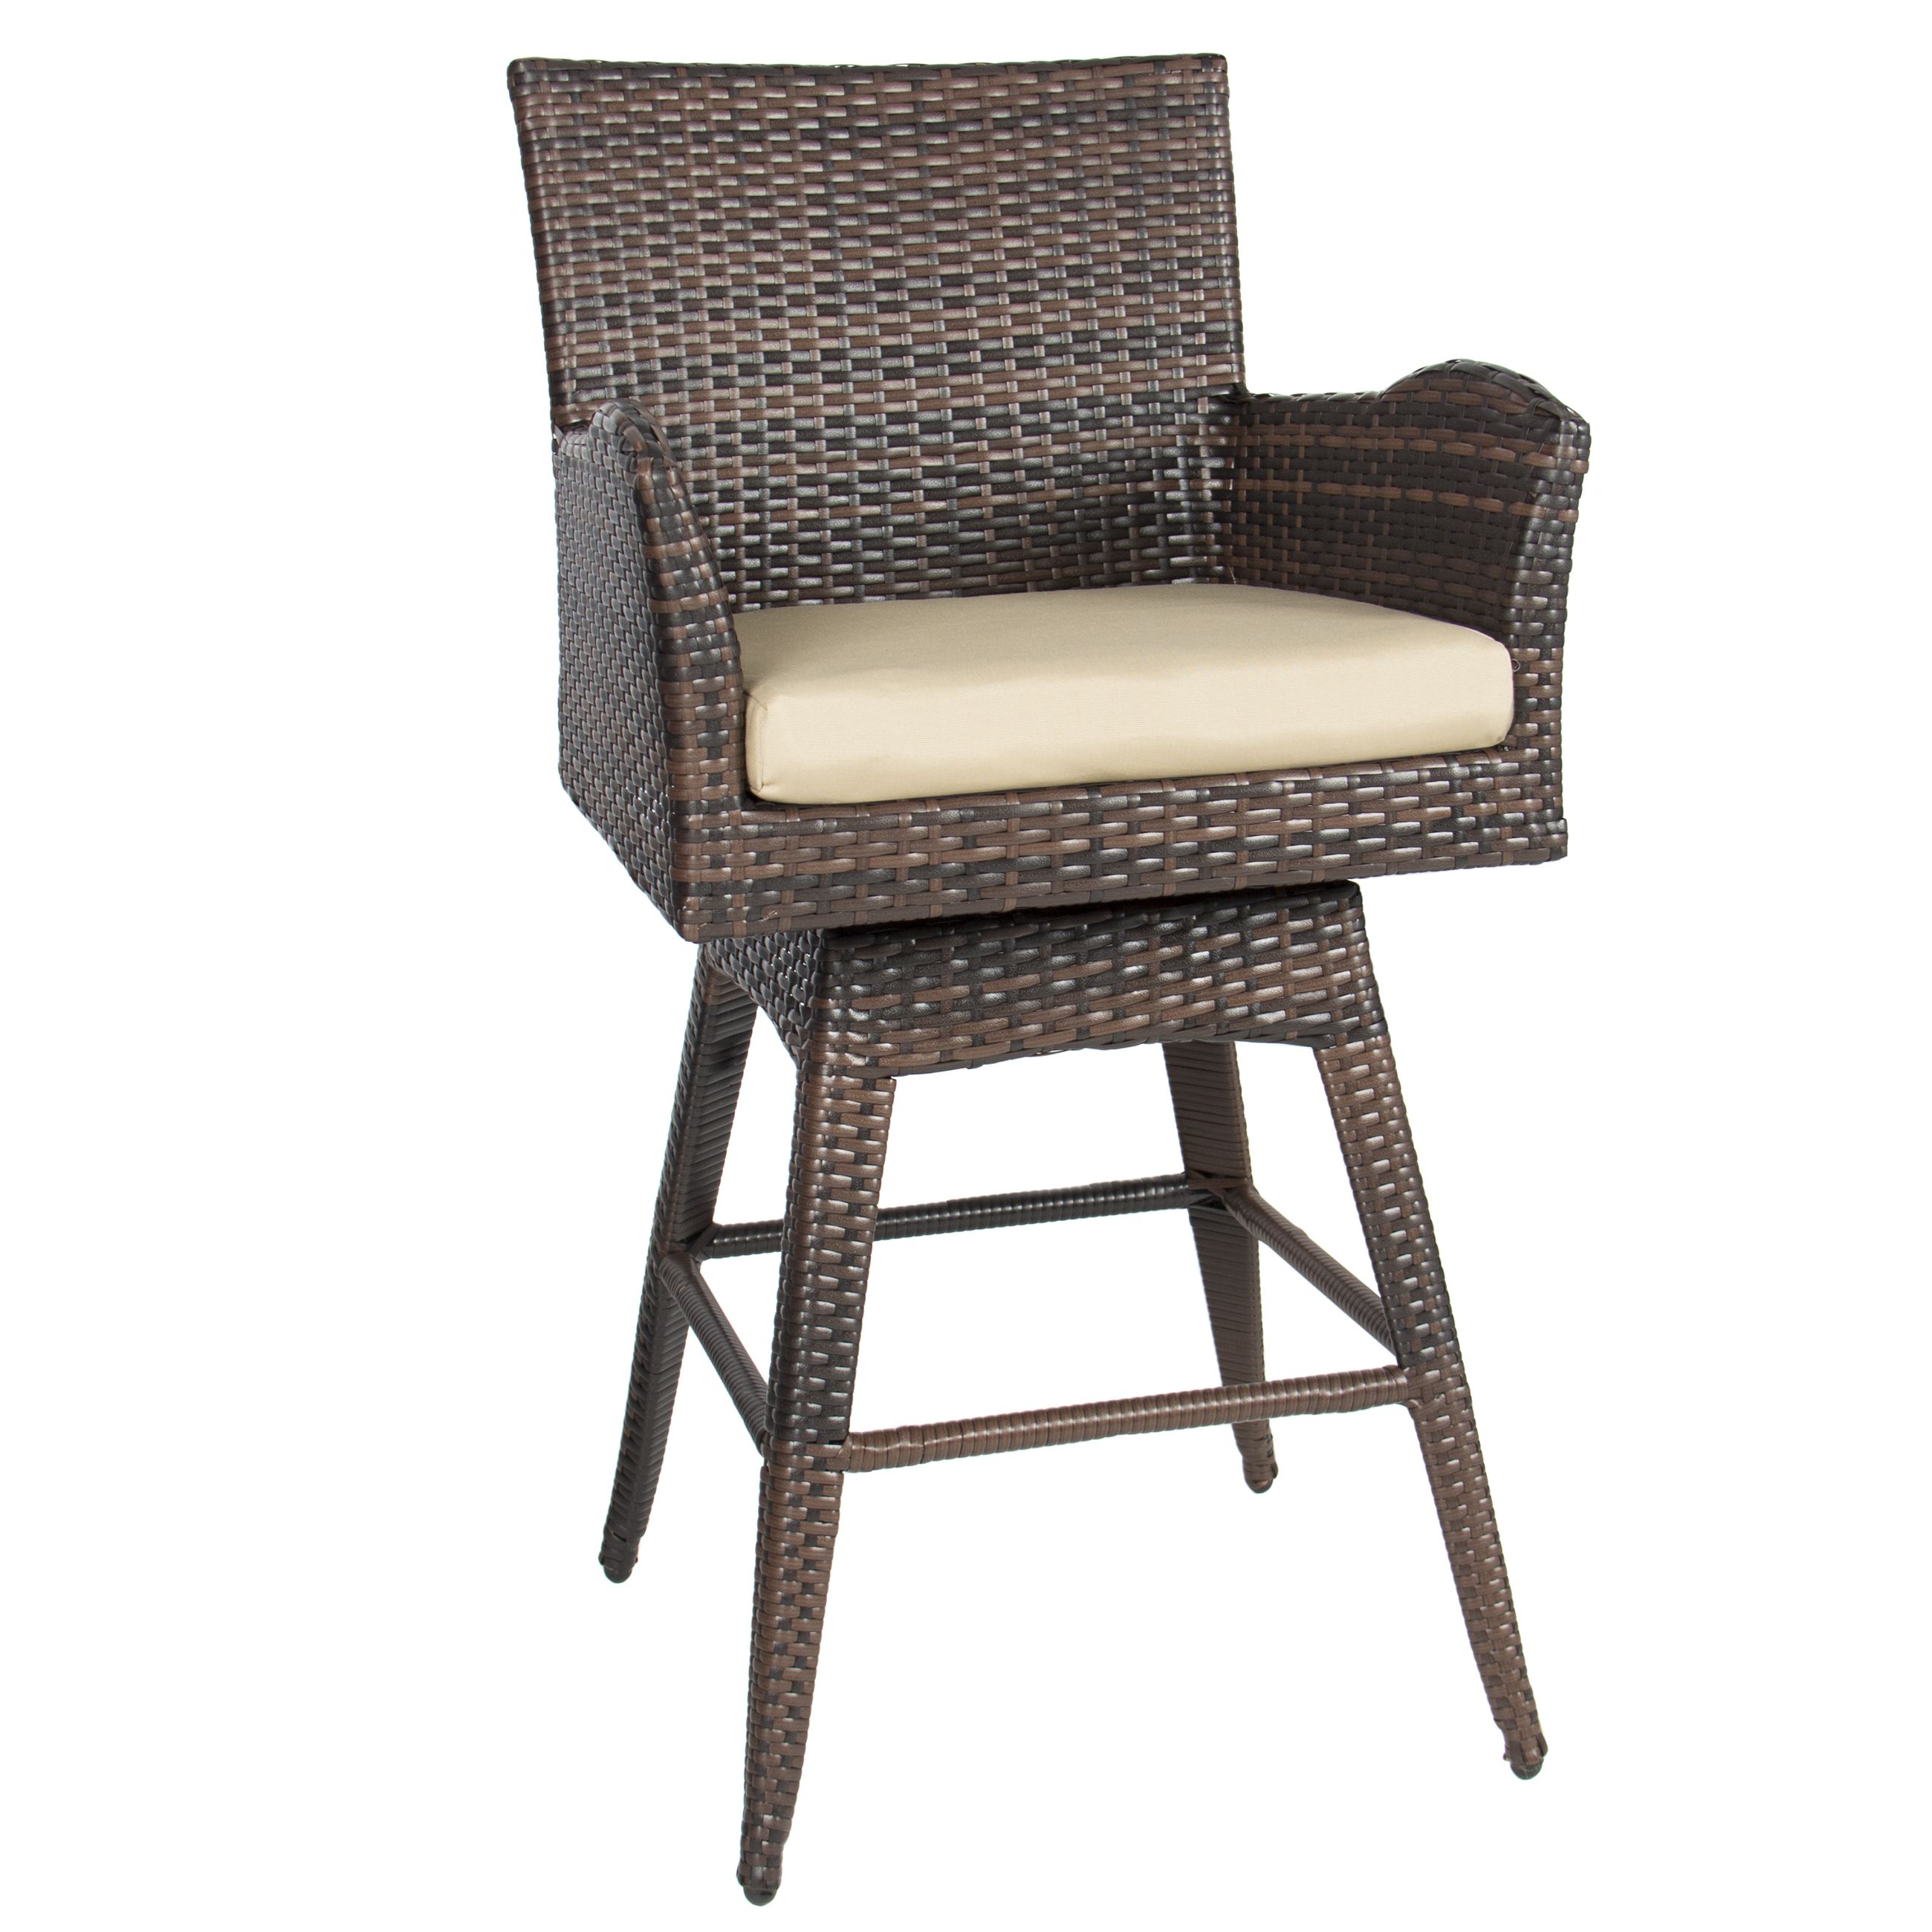 Best Choice Products Outdoor Patio Furniture All-Weather Brown PE Wicker Swivel Bar Stool w/ Cushion